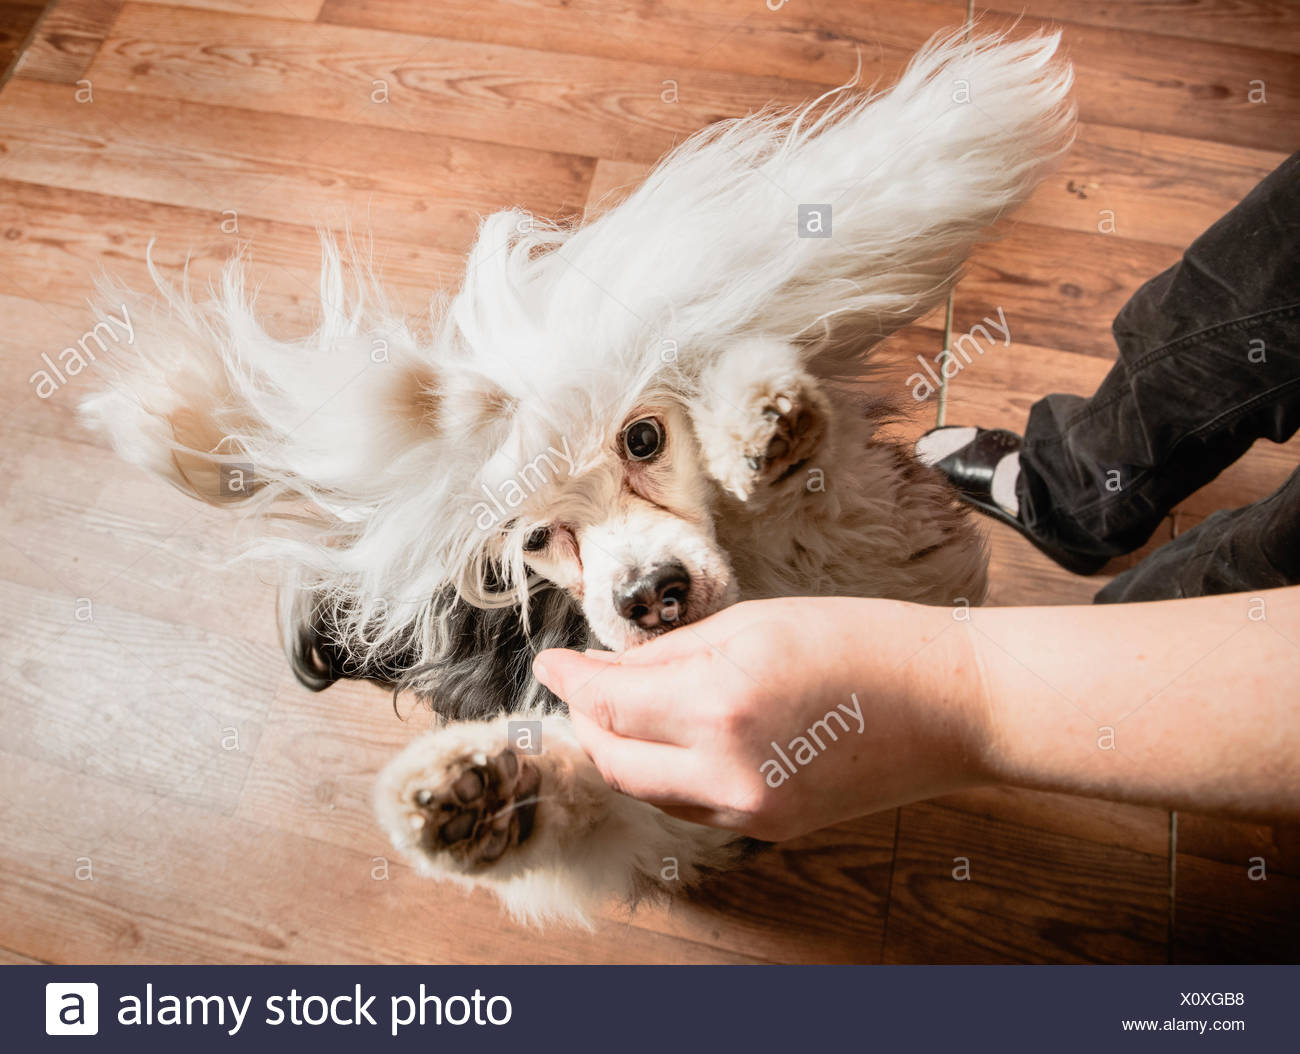 Dog jumping up to reach treat in owners hand, overhead view - Stock Image